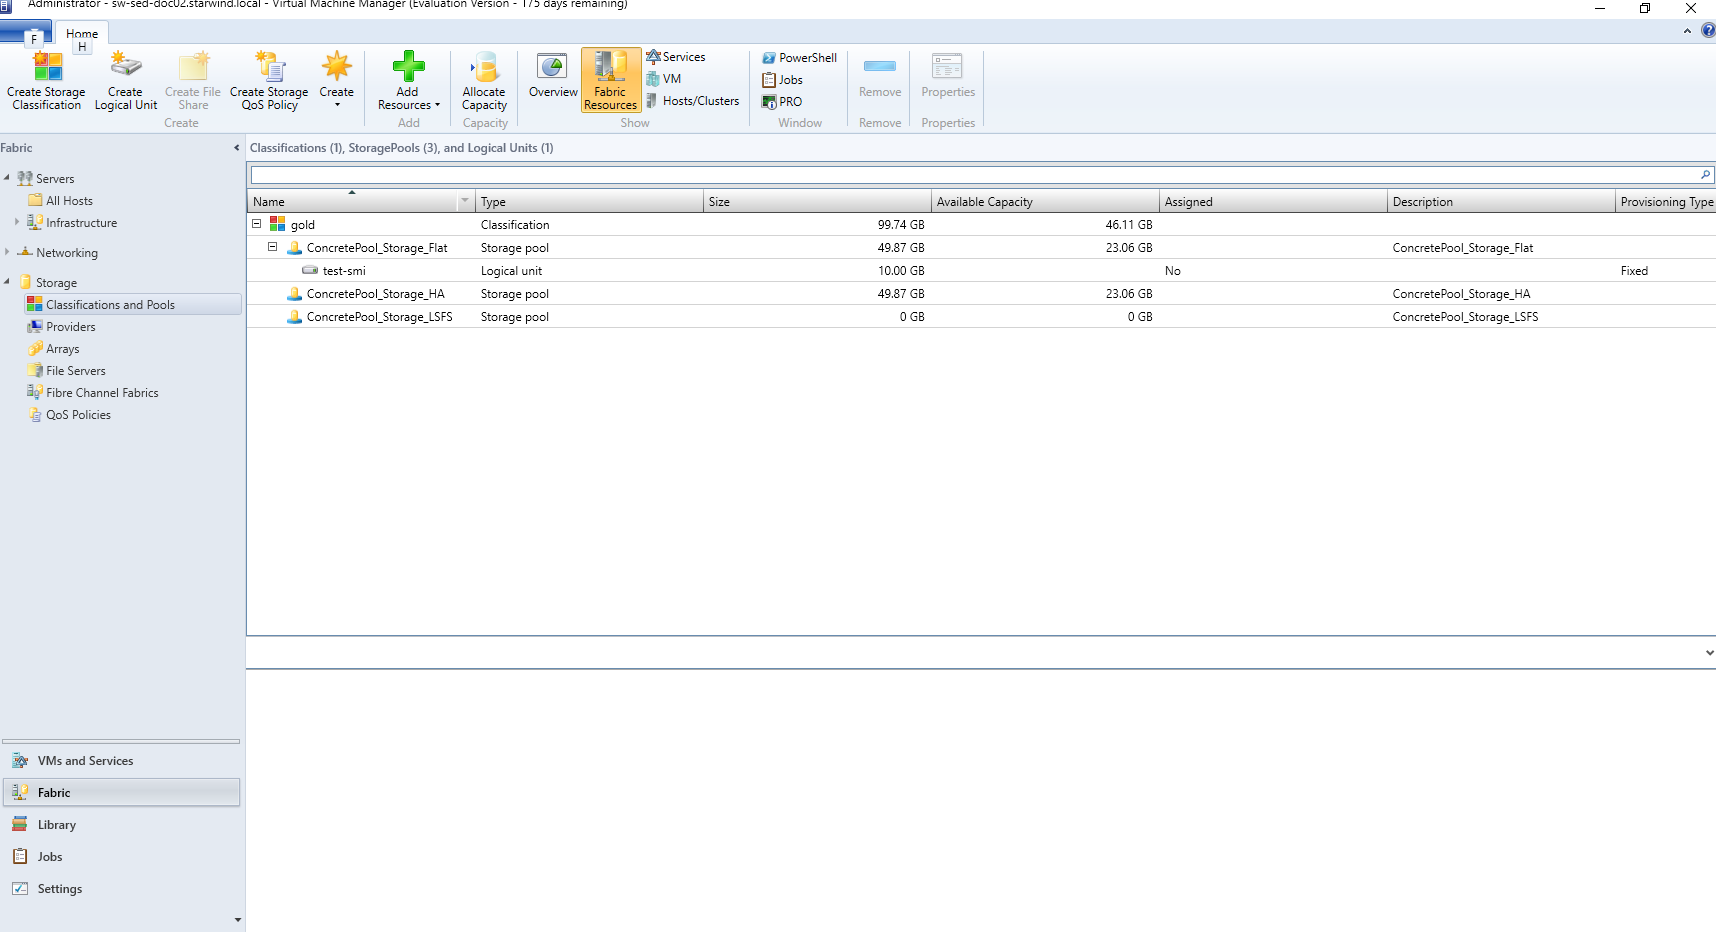 Manage StarWind VSAN storage from SCVMM using SMI-S - newly created Logical Unit